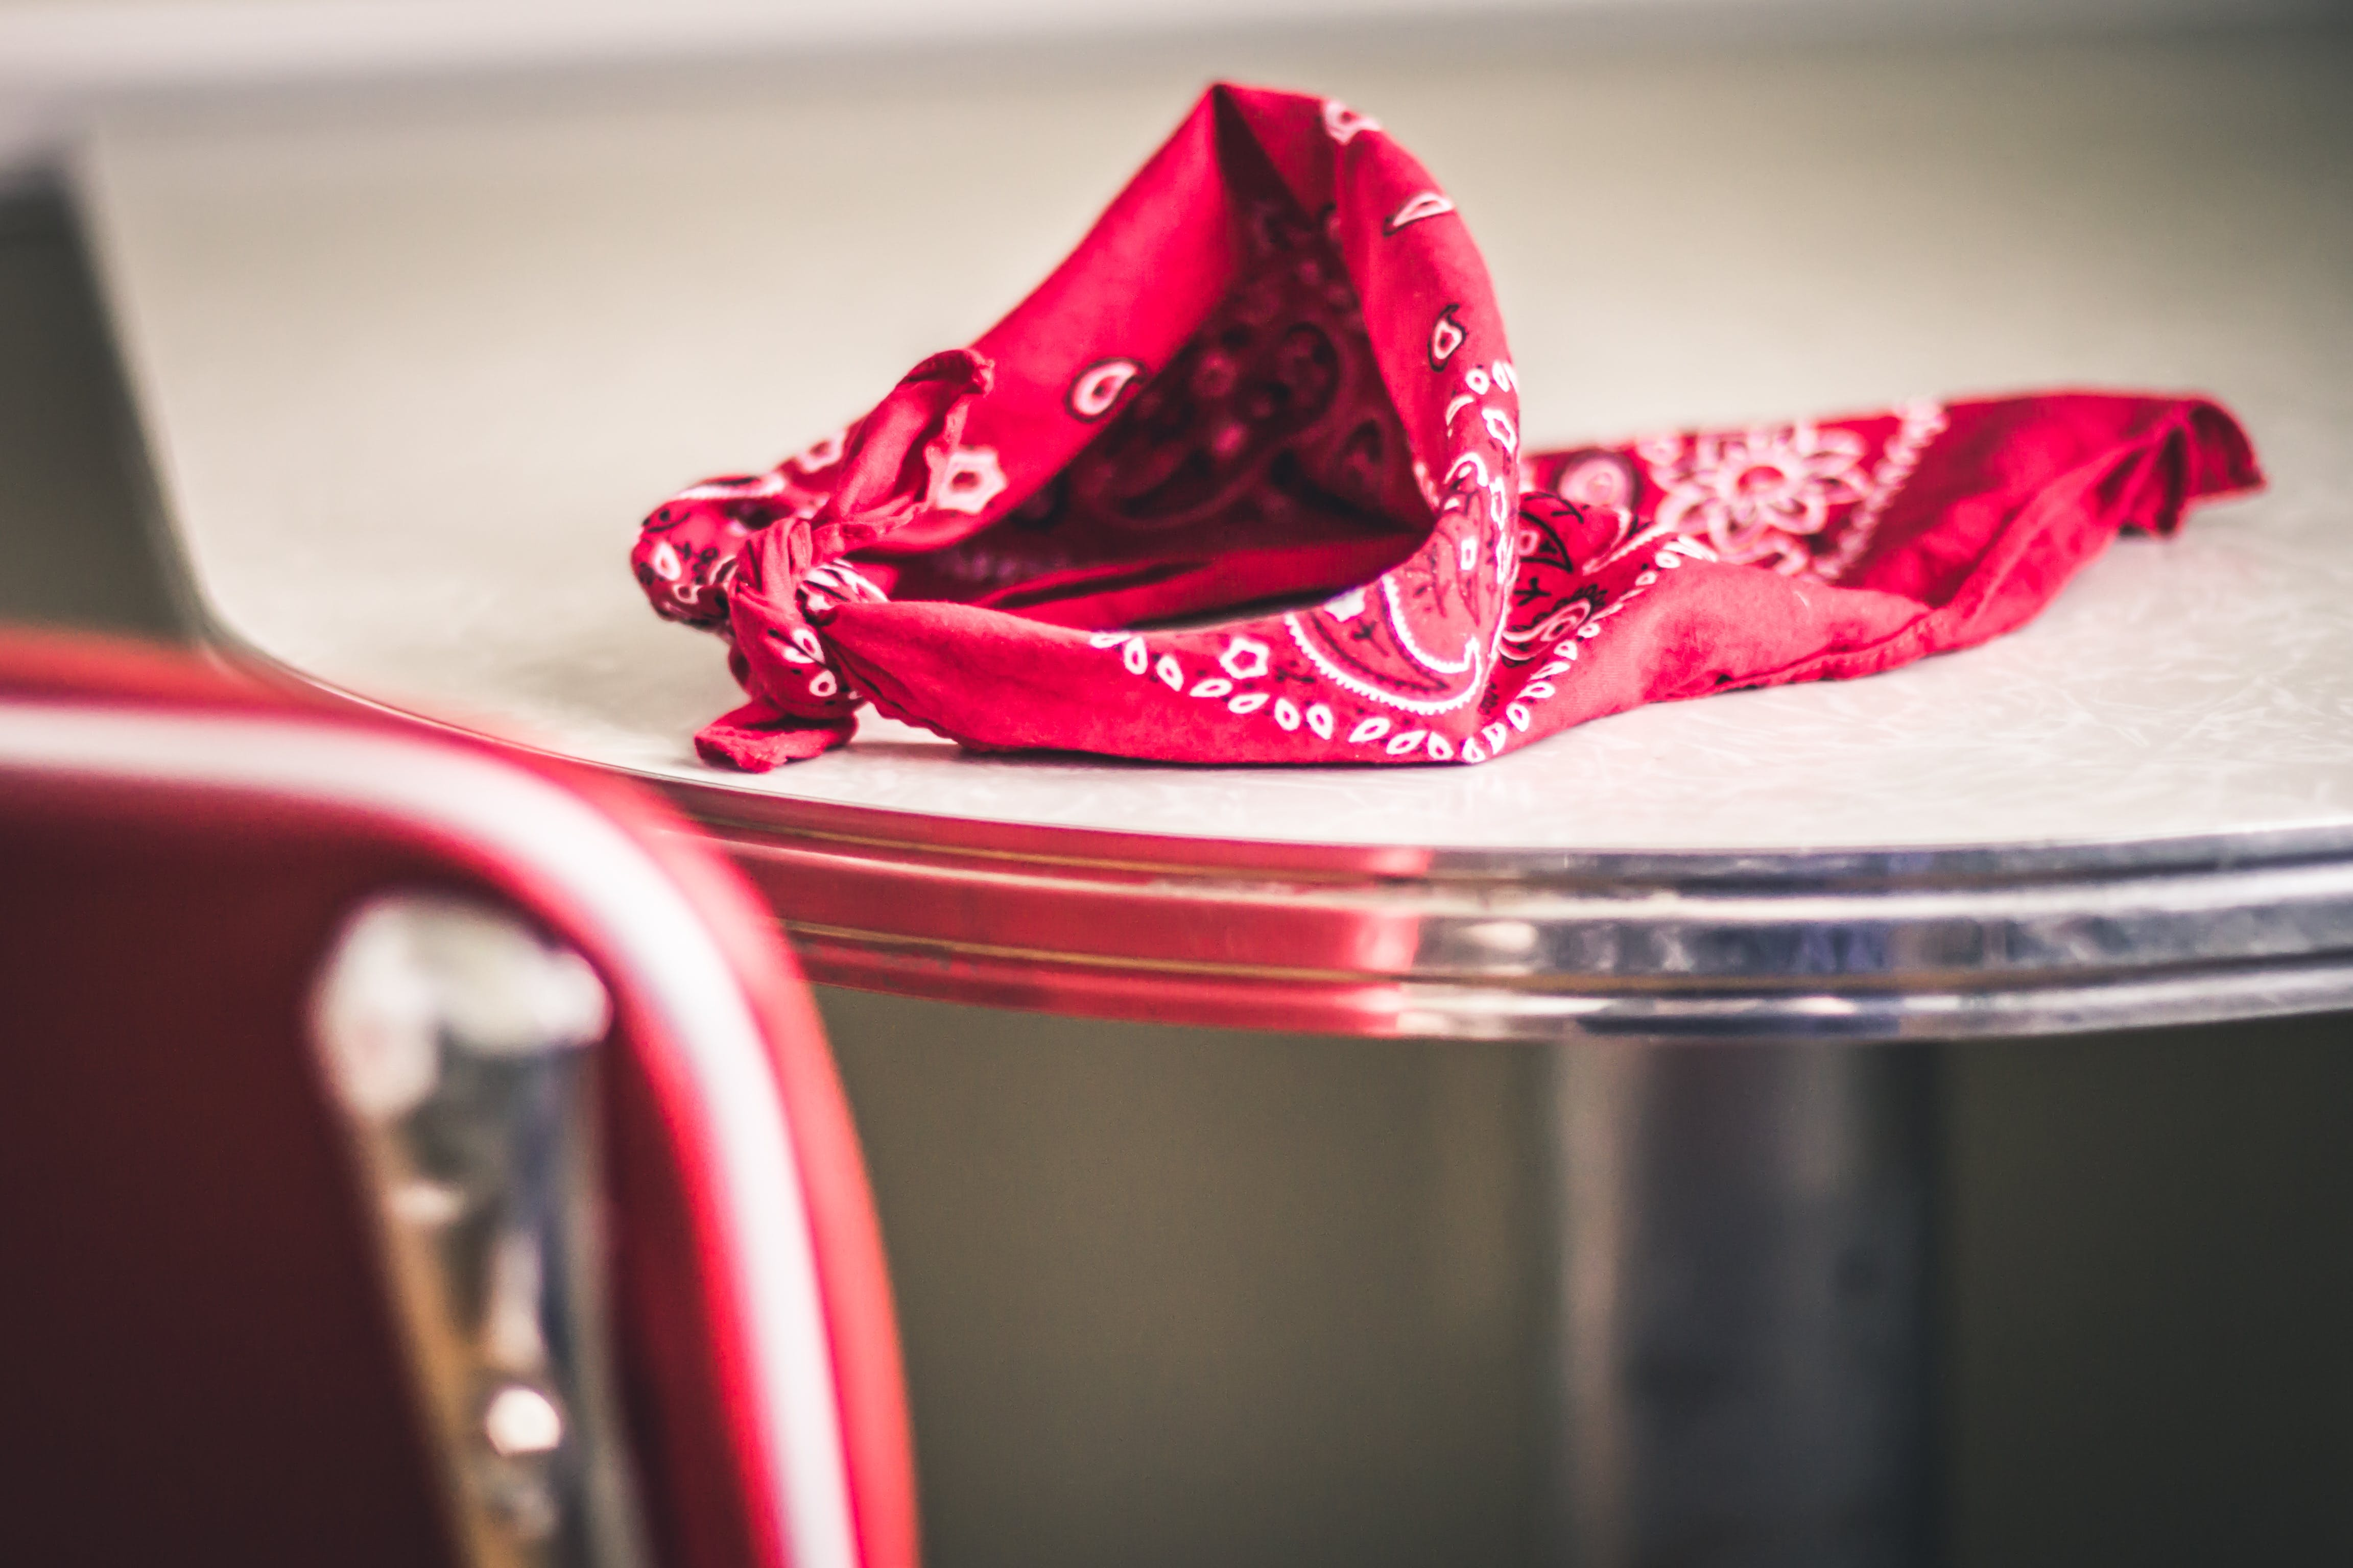 Red Paisley Handkerchief on Gray and White Table